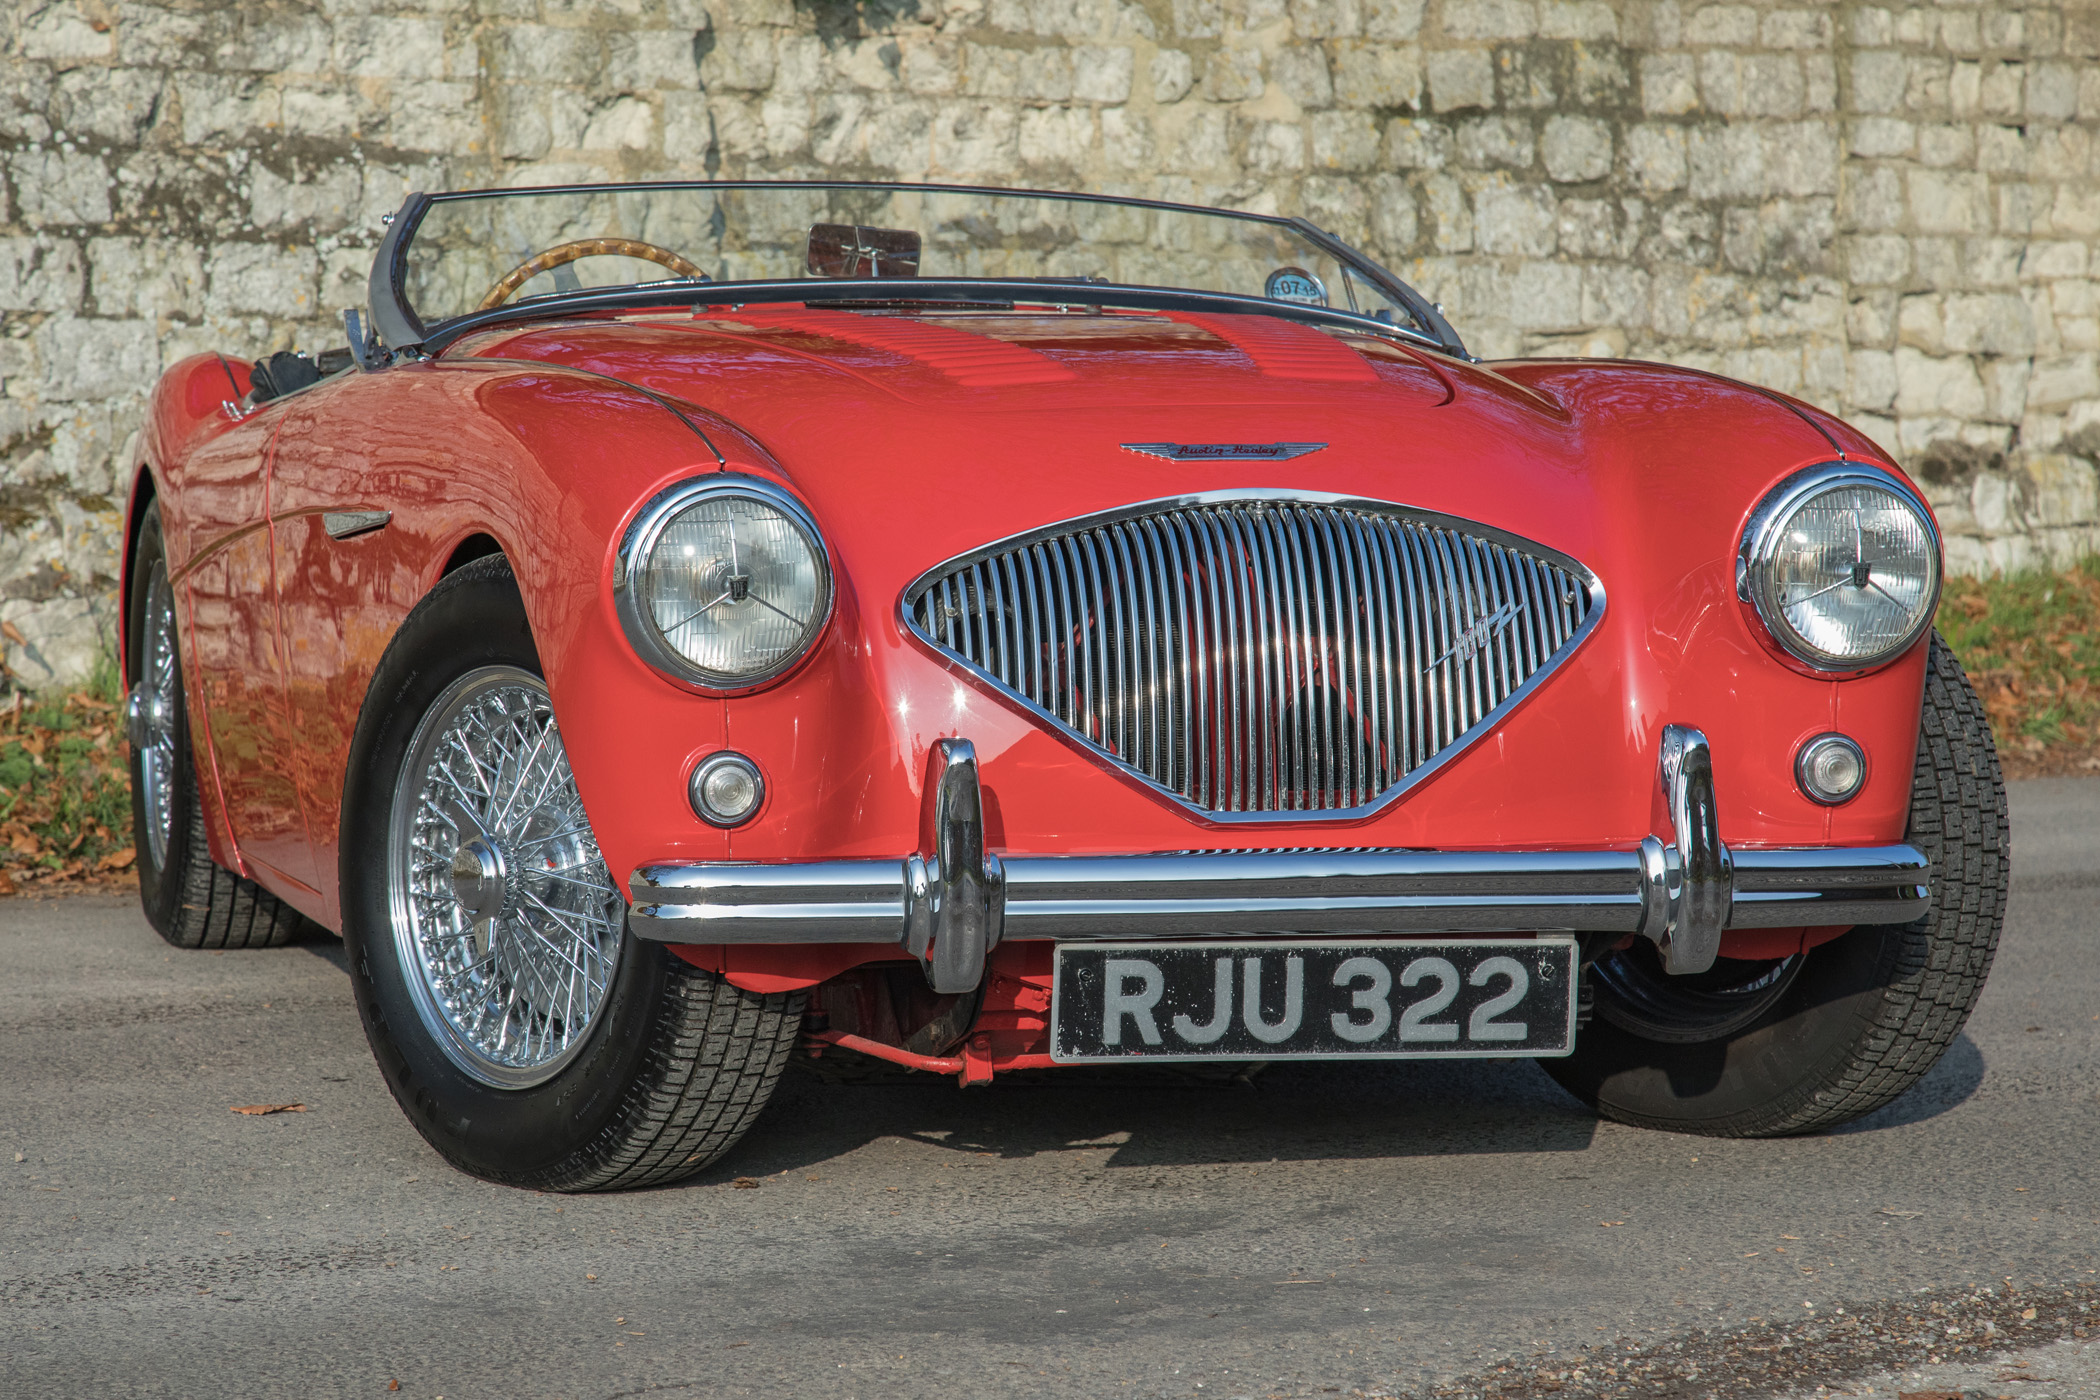 Sold Austin Healey 100 Bn1 Original Rhd Carmine Red Rawles Motorsport Austin Healey Restoration And Sales Specialists